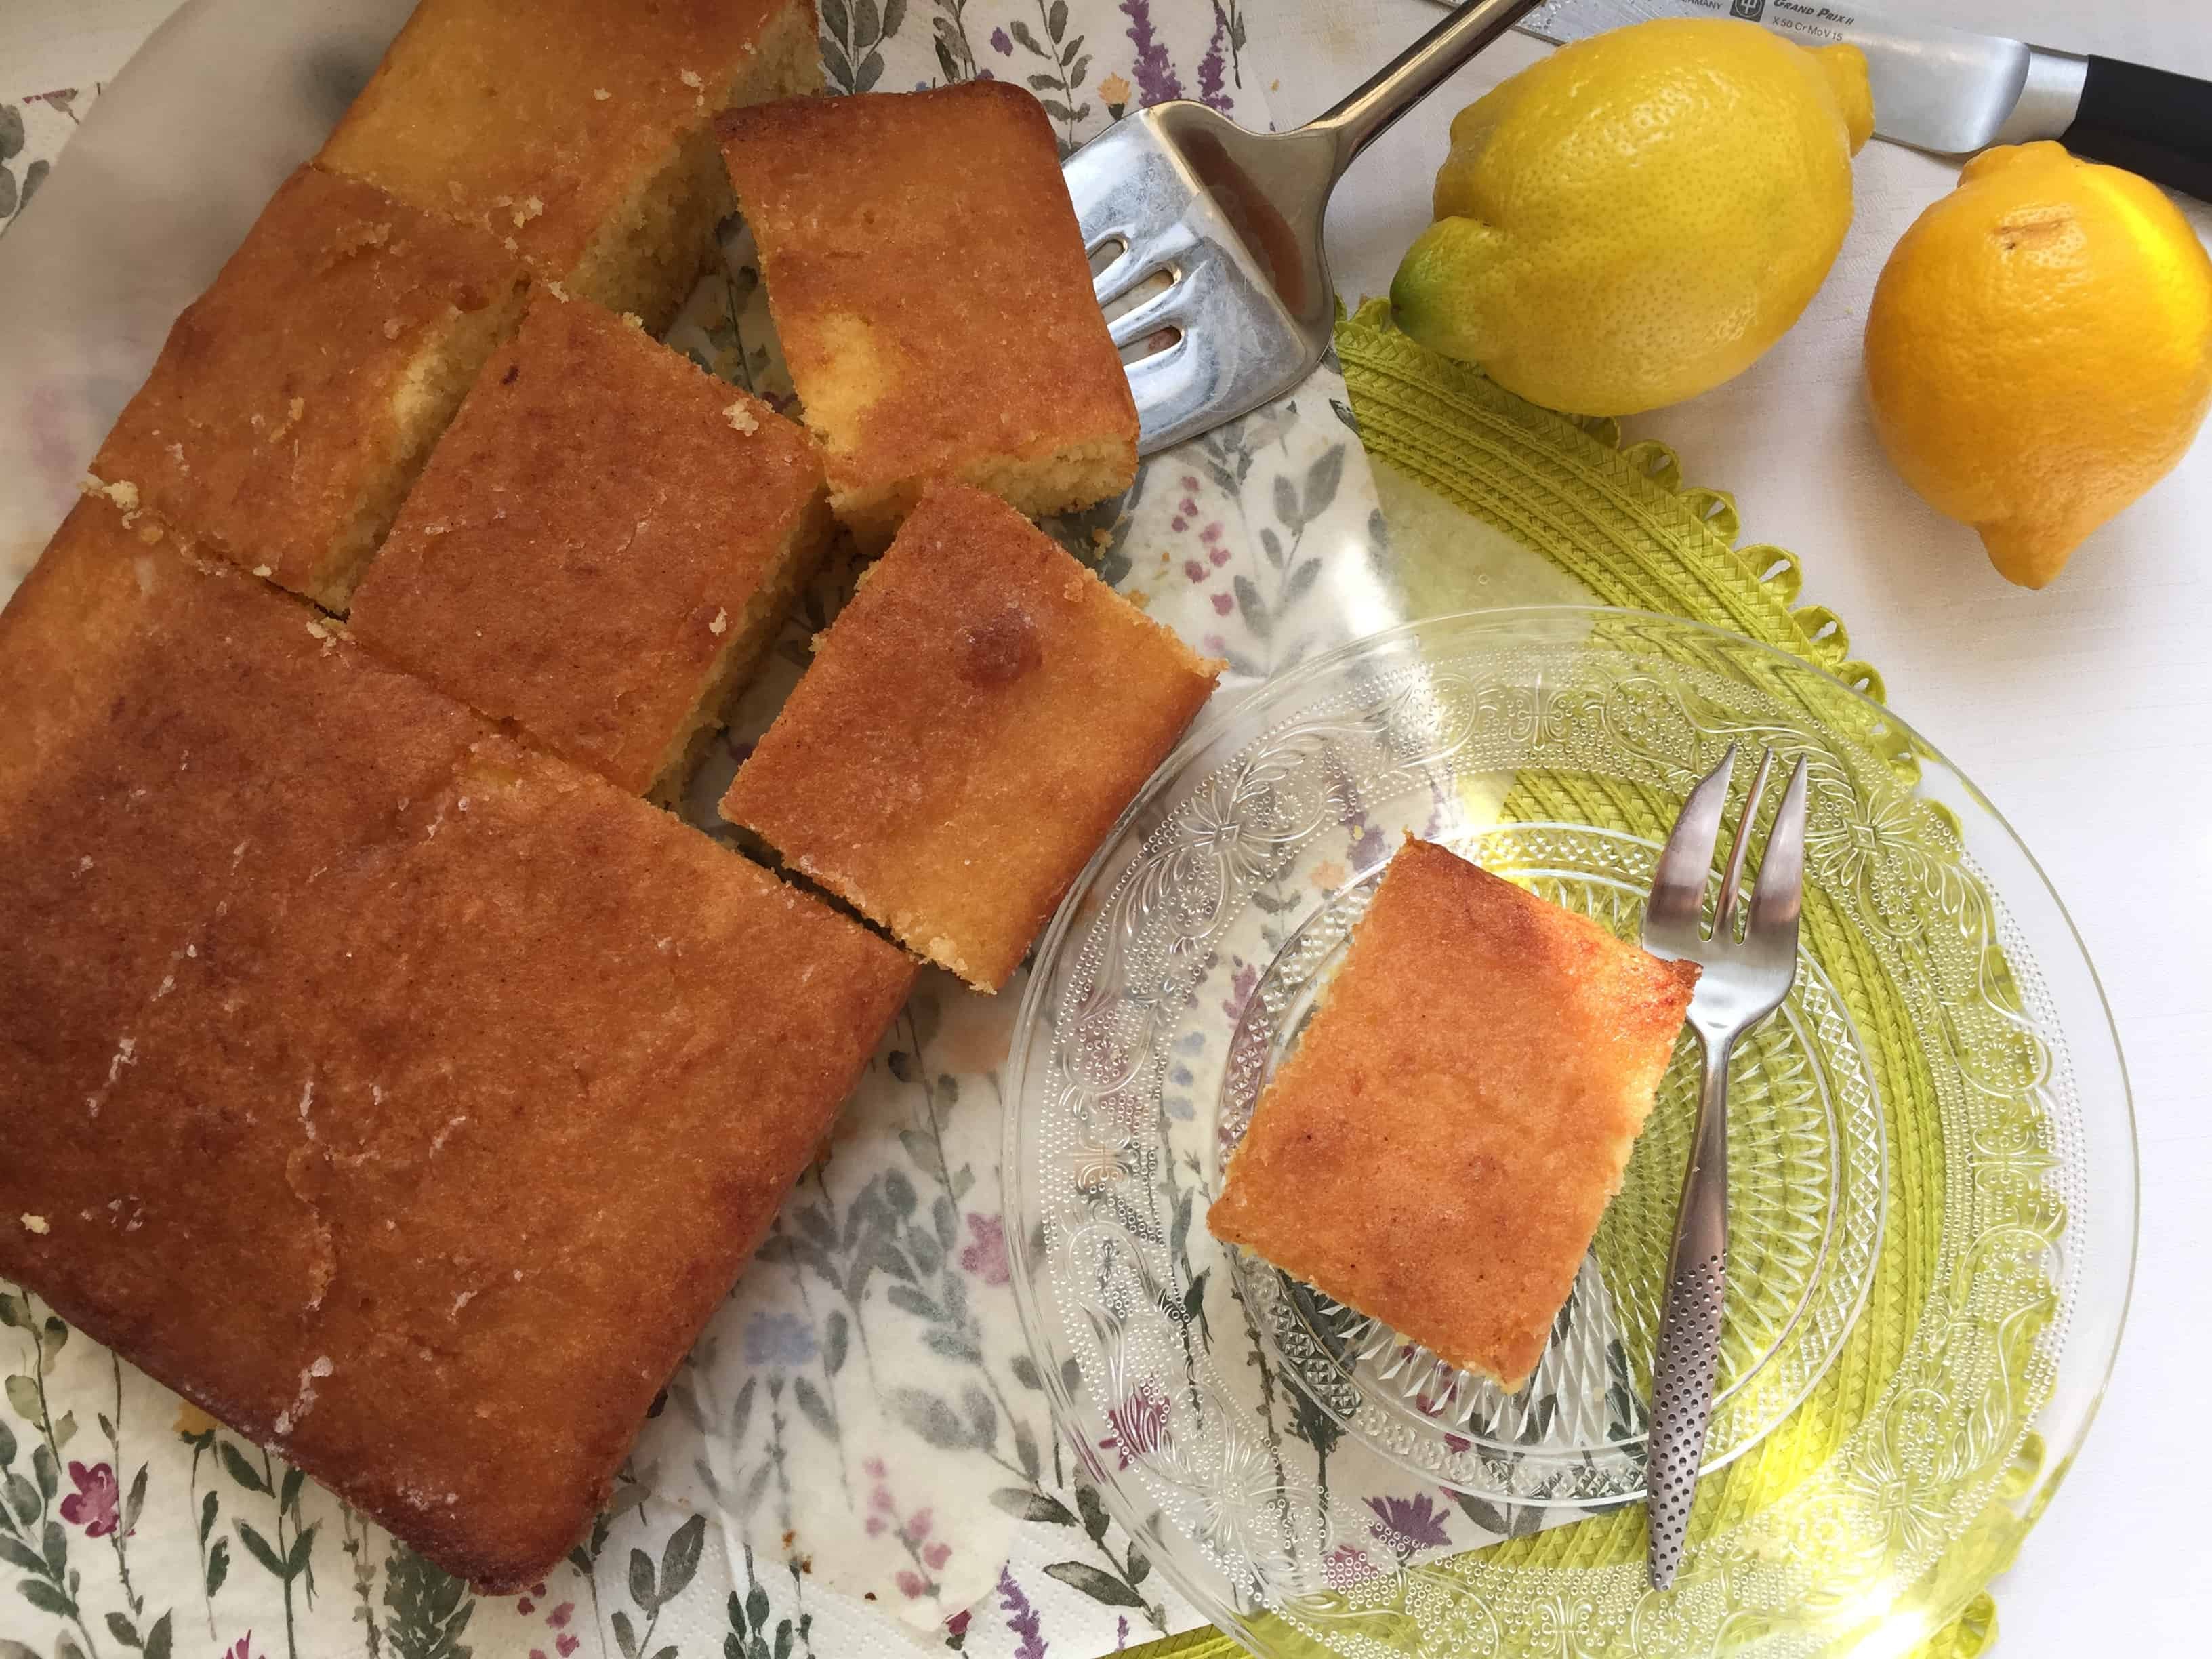 Slices of cake with lemons on the side.